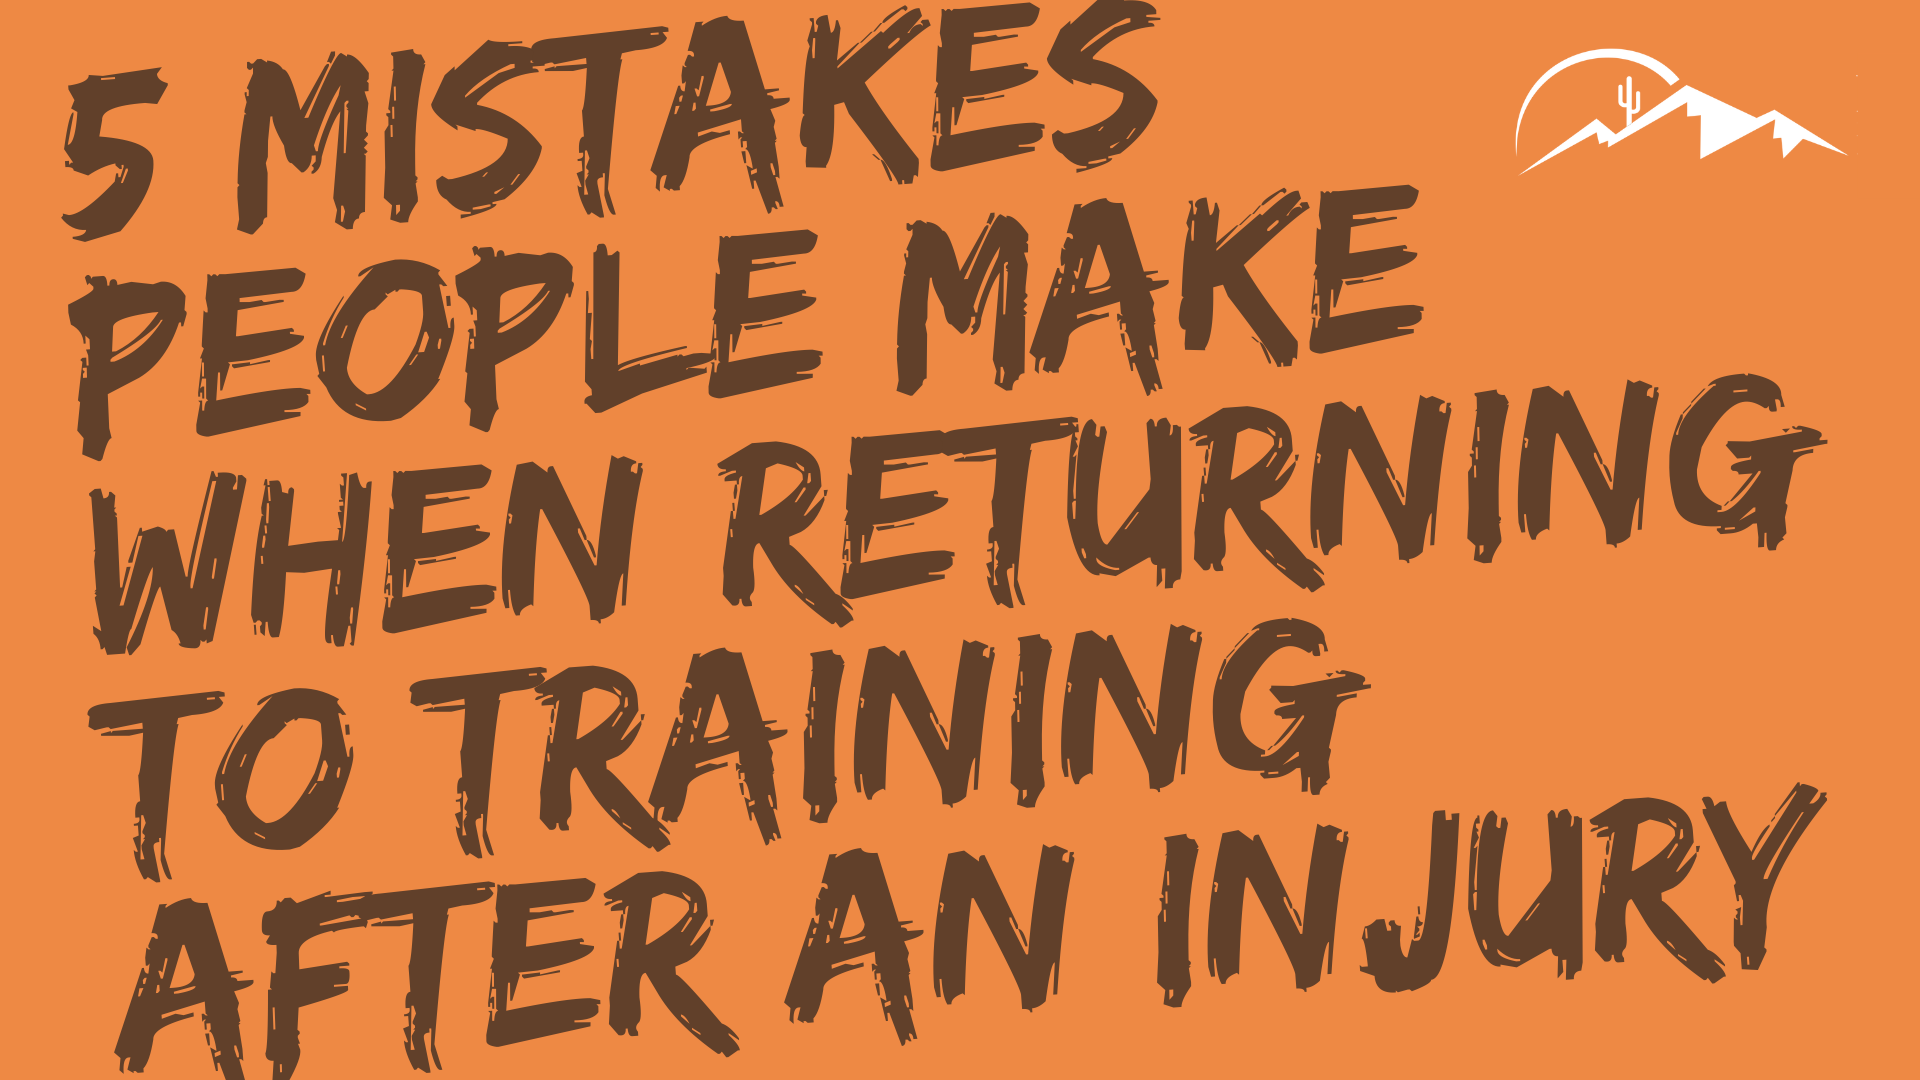 5 mistakes people make when returning to training after an injury